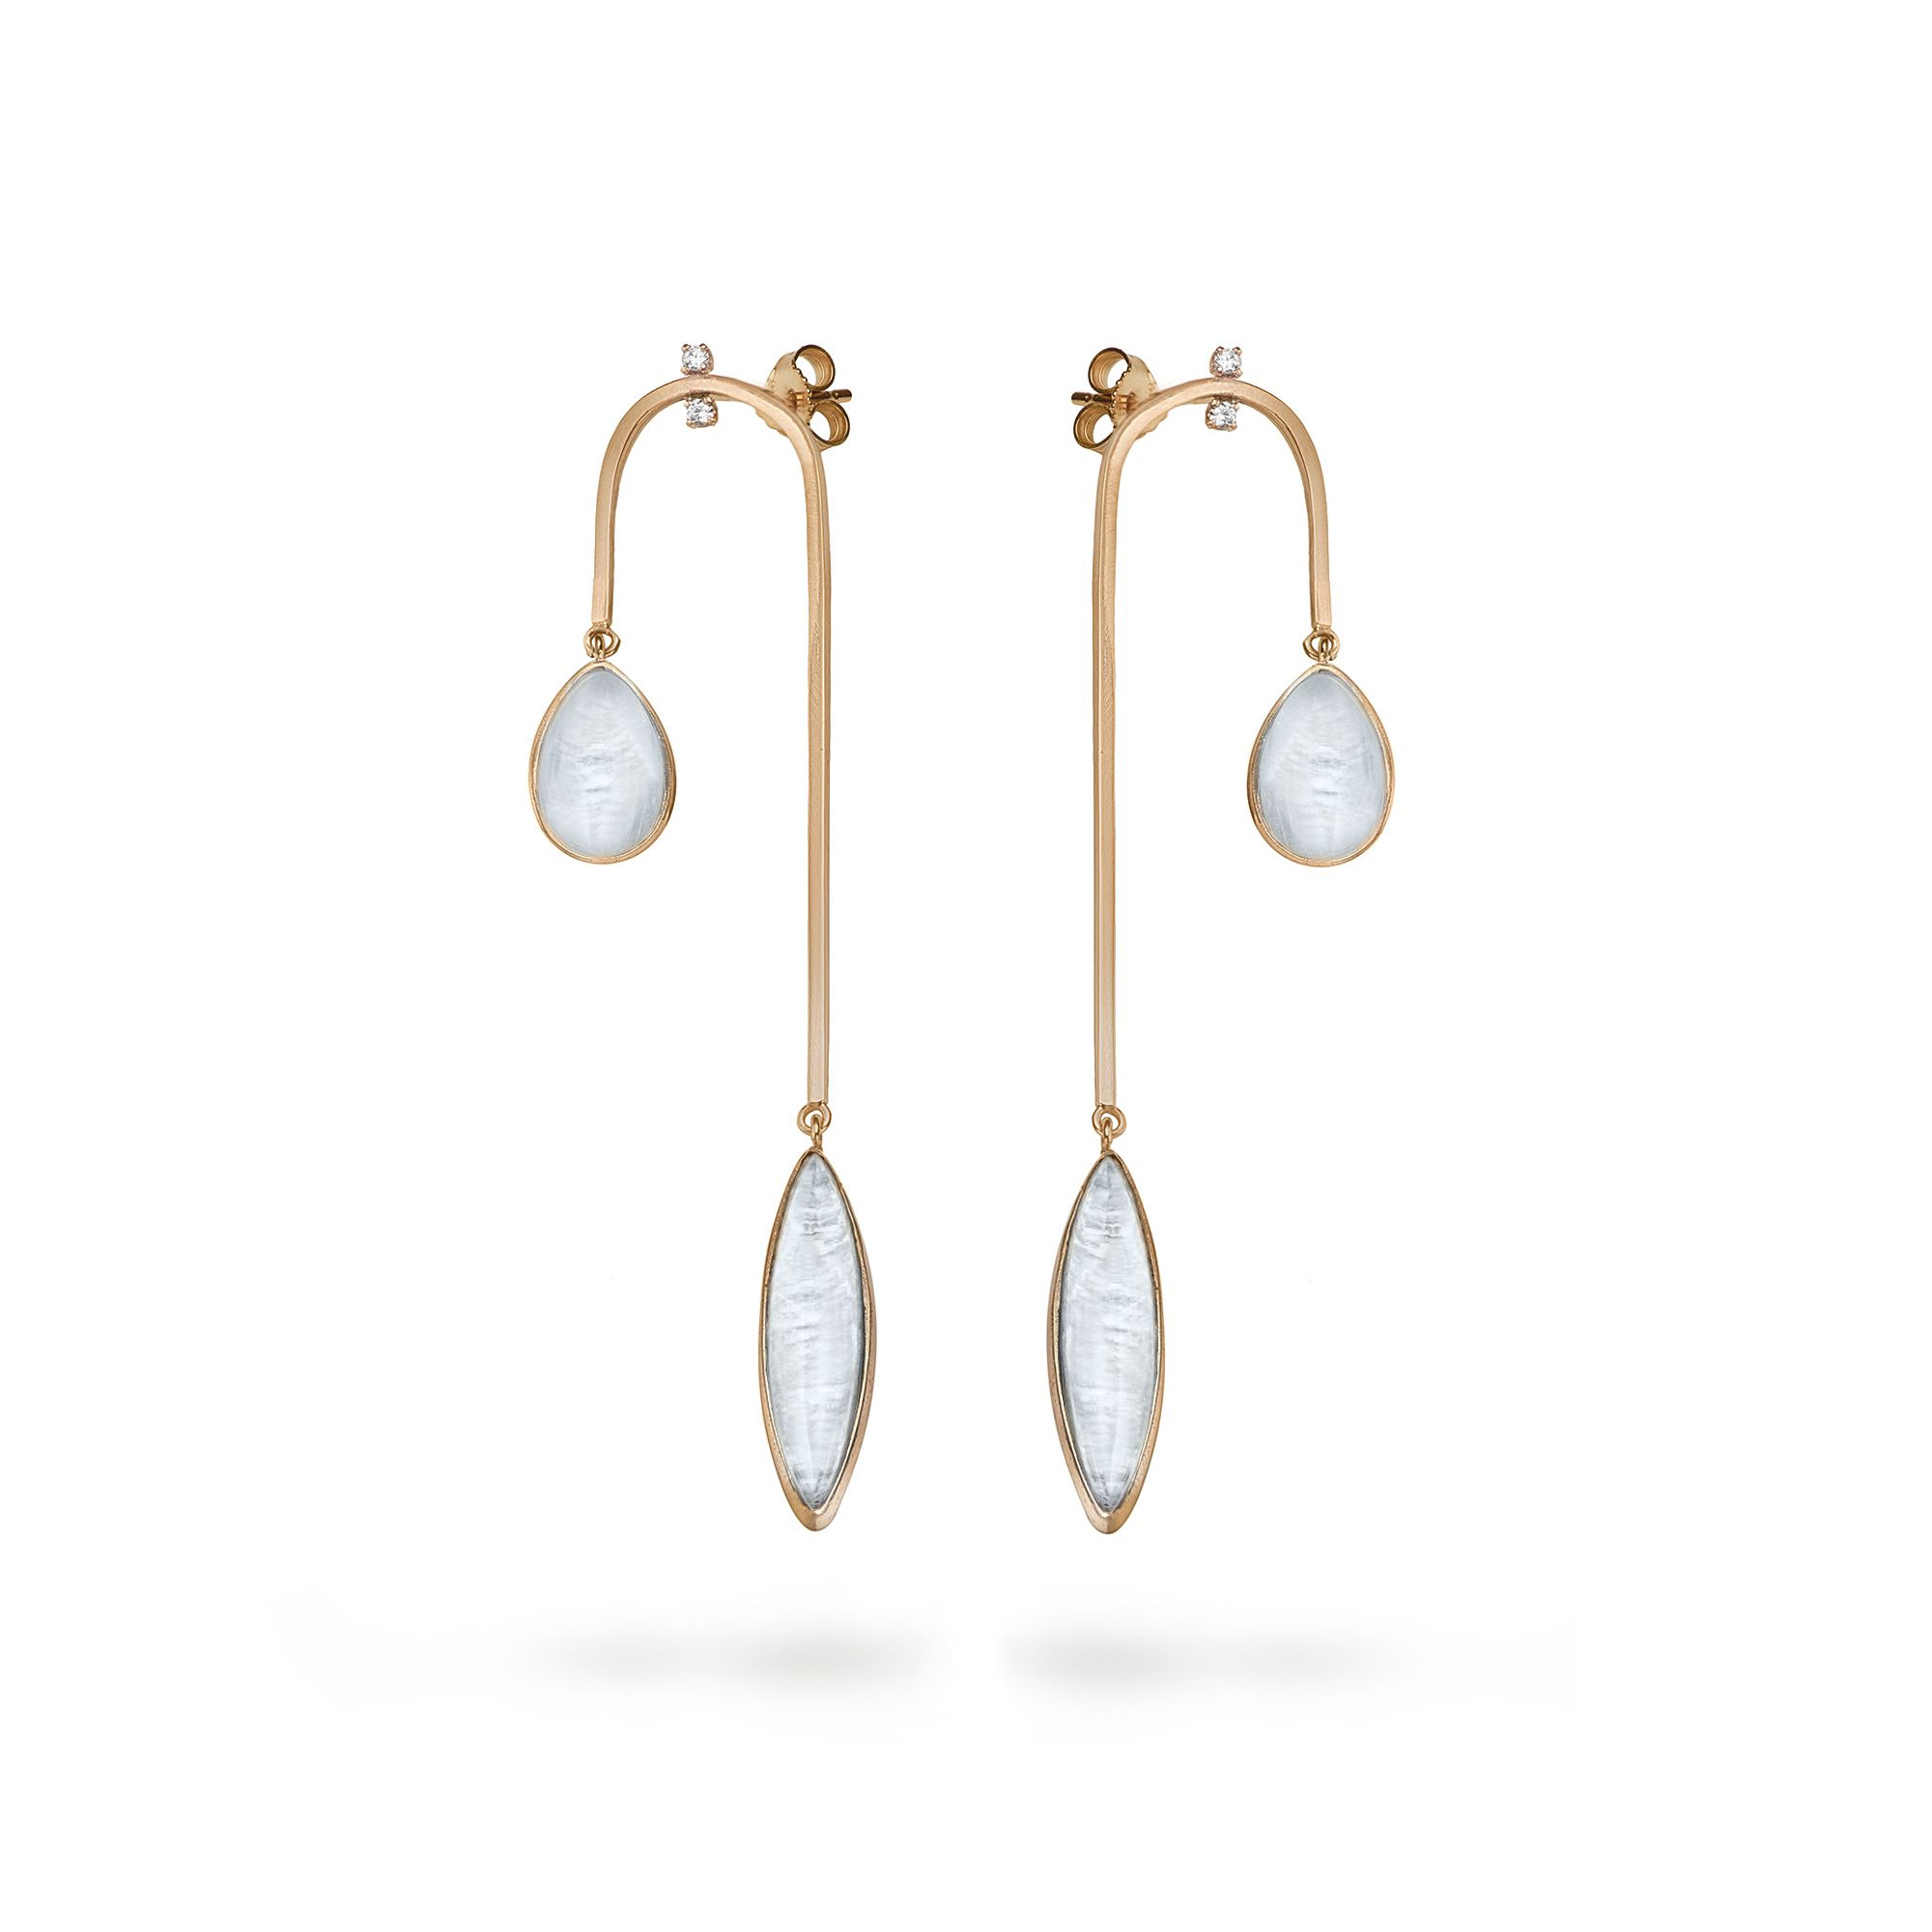 Curved 'Amo' earrings Rose gold earrings with diamonds and aquamarine